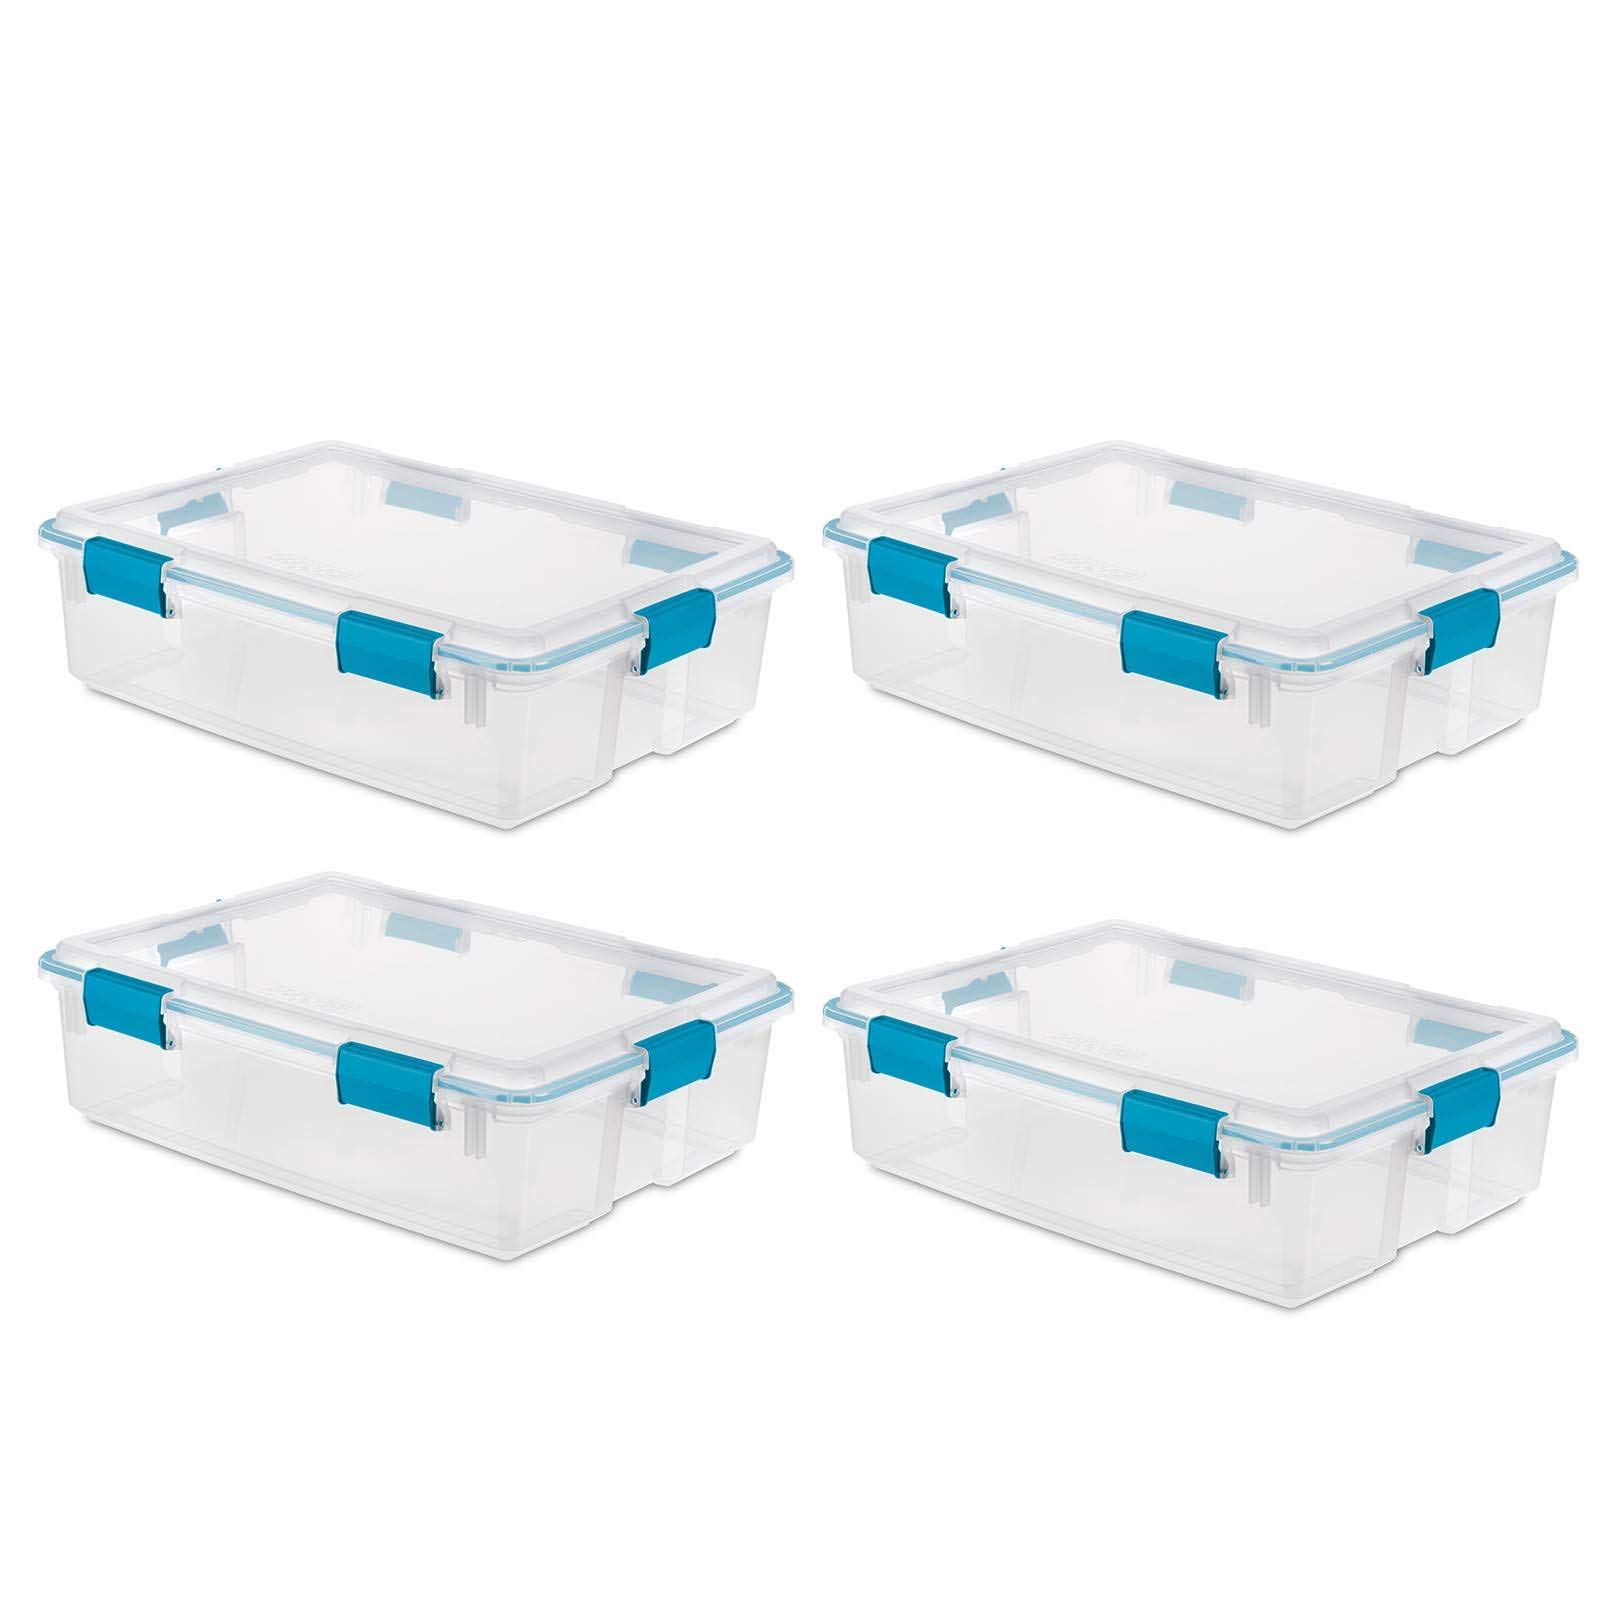 Sterilite 37 Qt Thin Gasket Box Clear Storage Bin Containers, 4-Pack | 19314304 by STERILITE